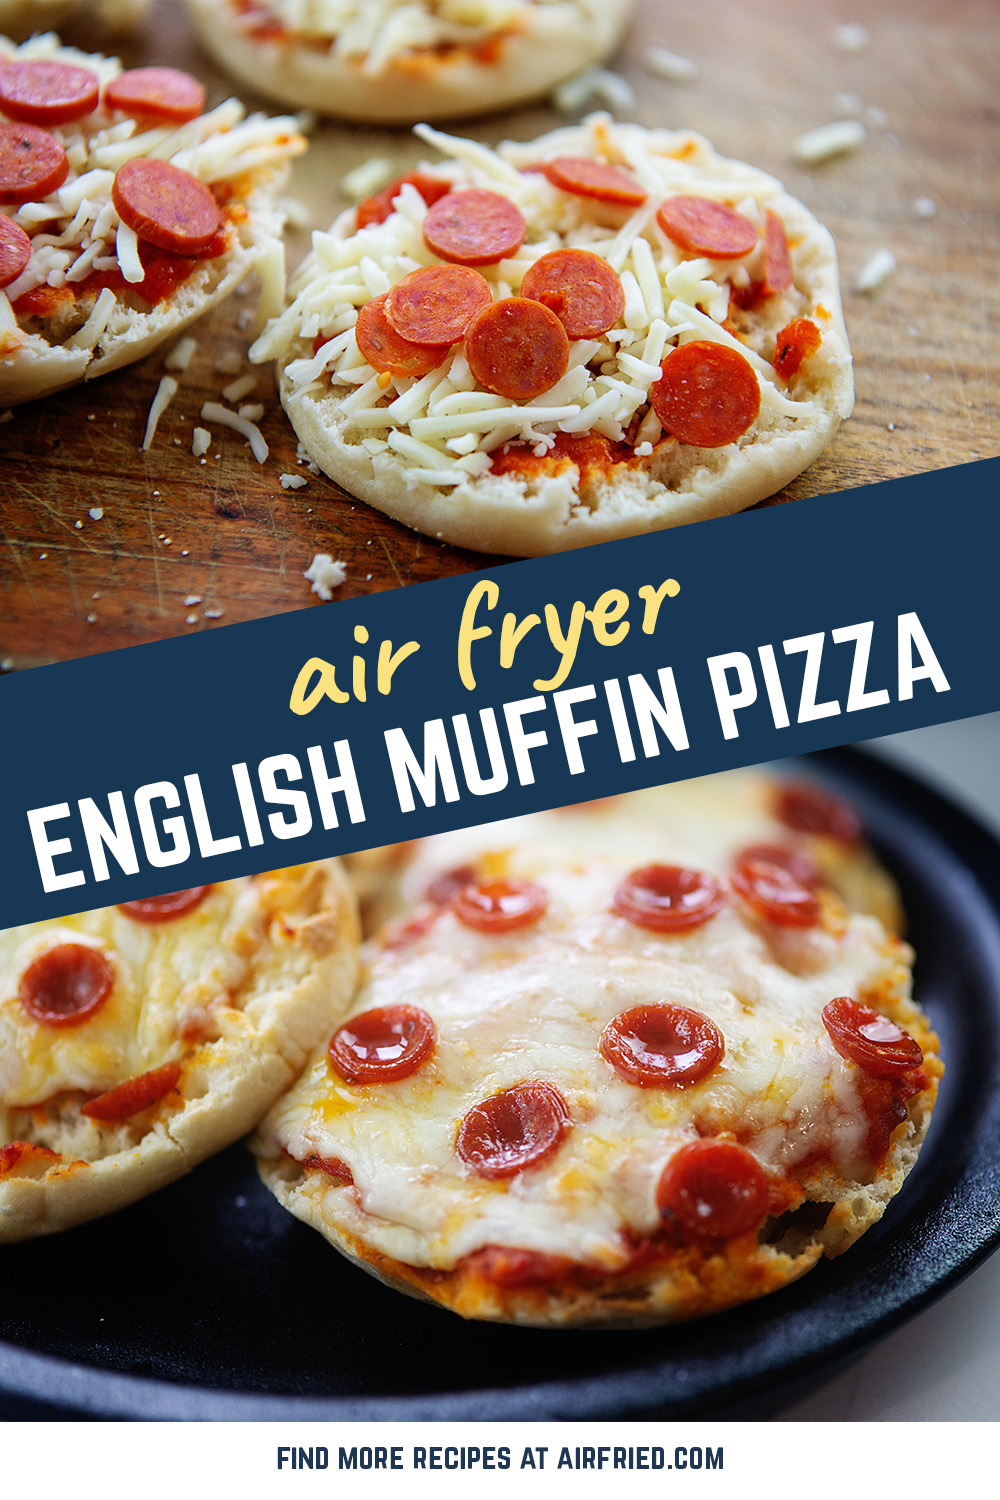 Simple and personal-sized, these English muffin pizzas are a wonderful lunch!